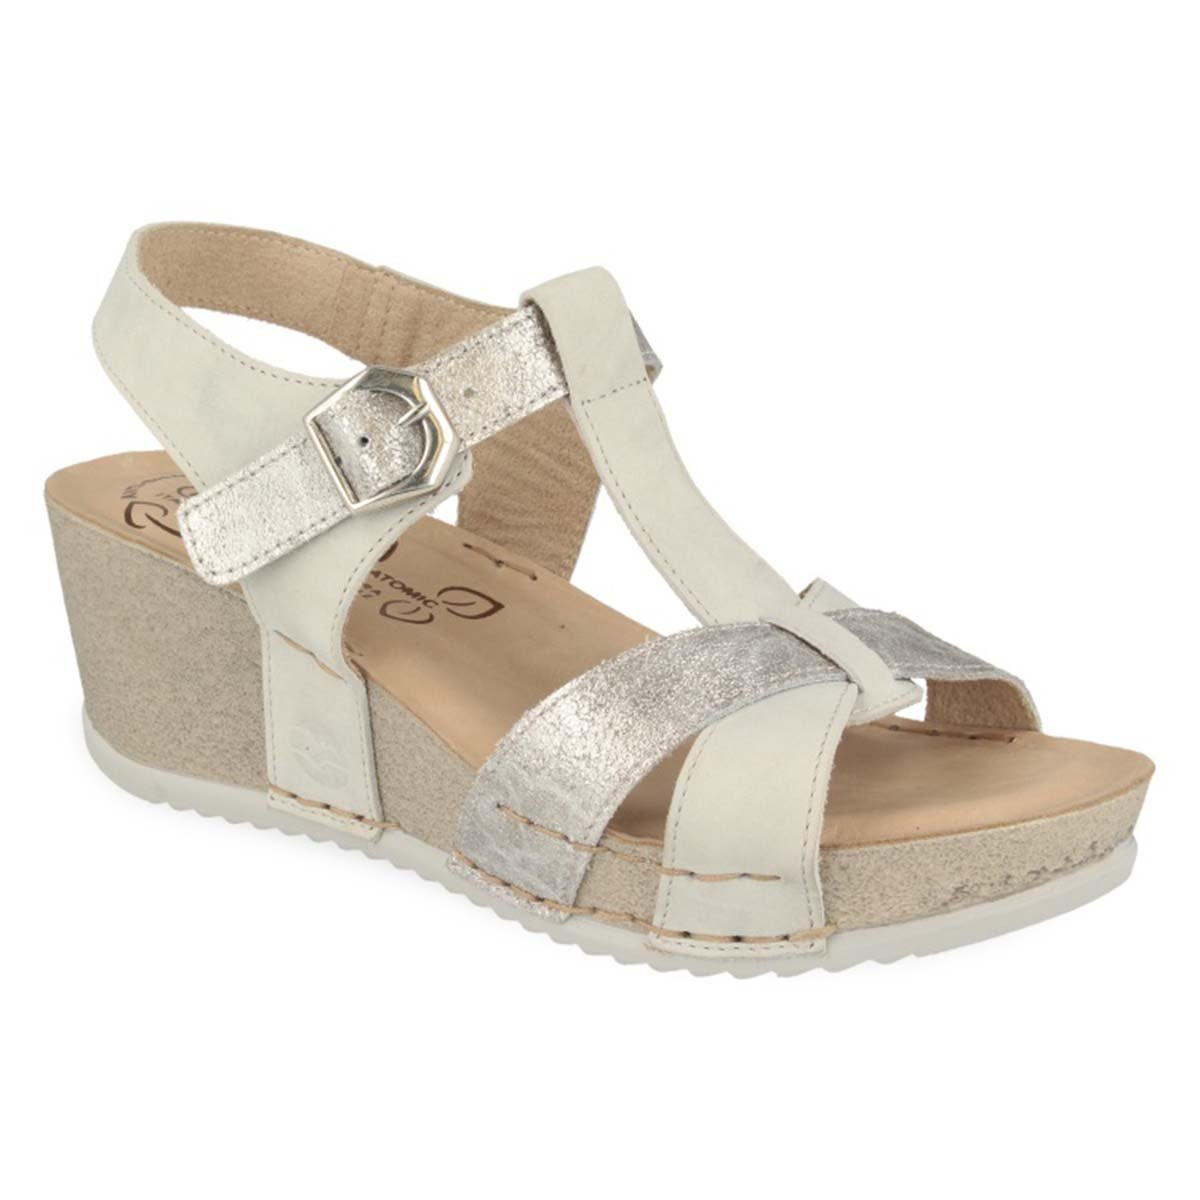 See photos Leather Woman Sandal White (332167G)